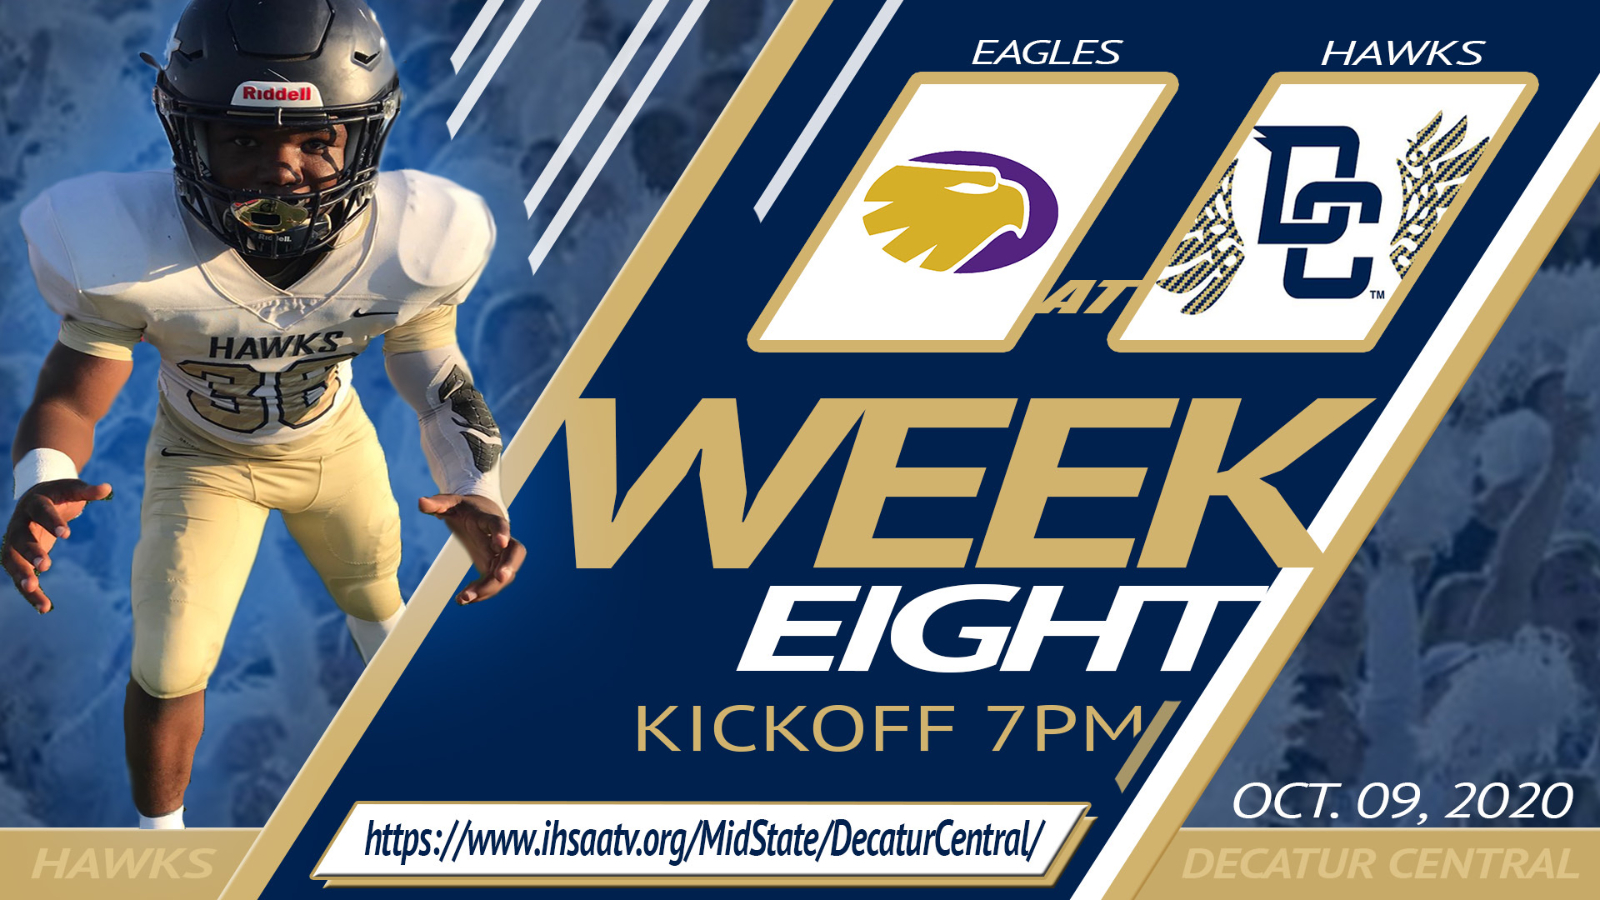 10/09/20- Decatur Central vs. Guerin Catholic- General Admission Tickets